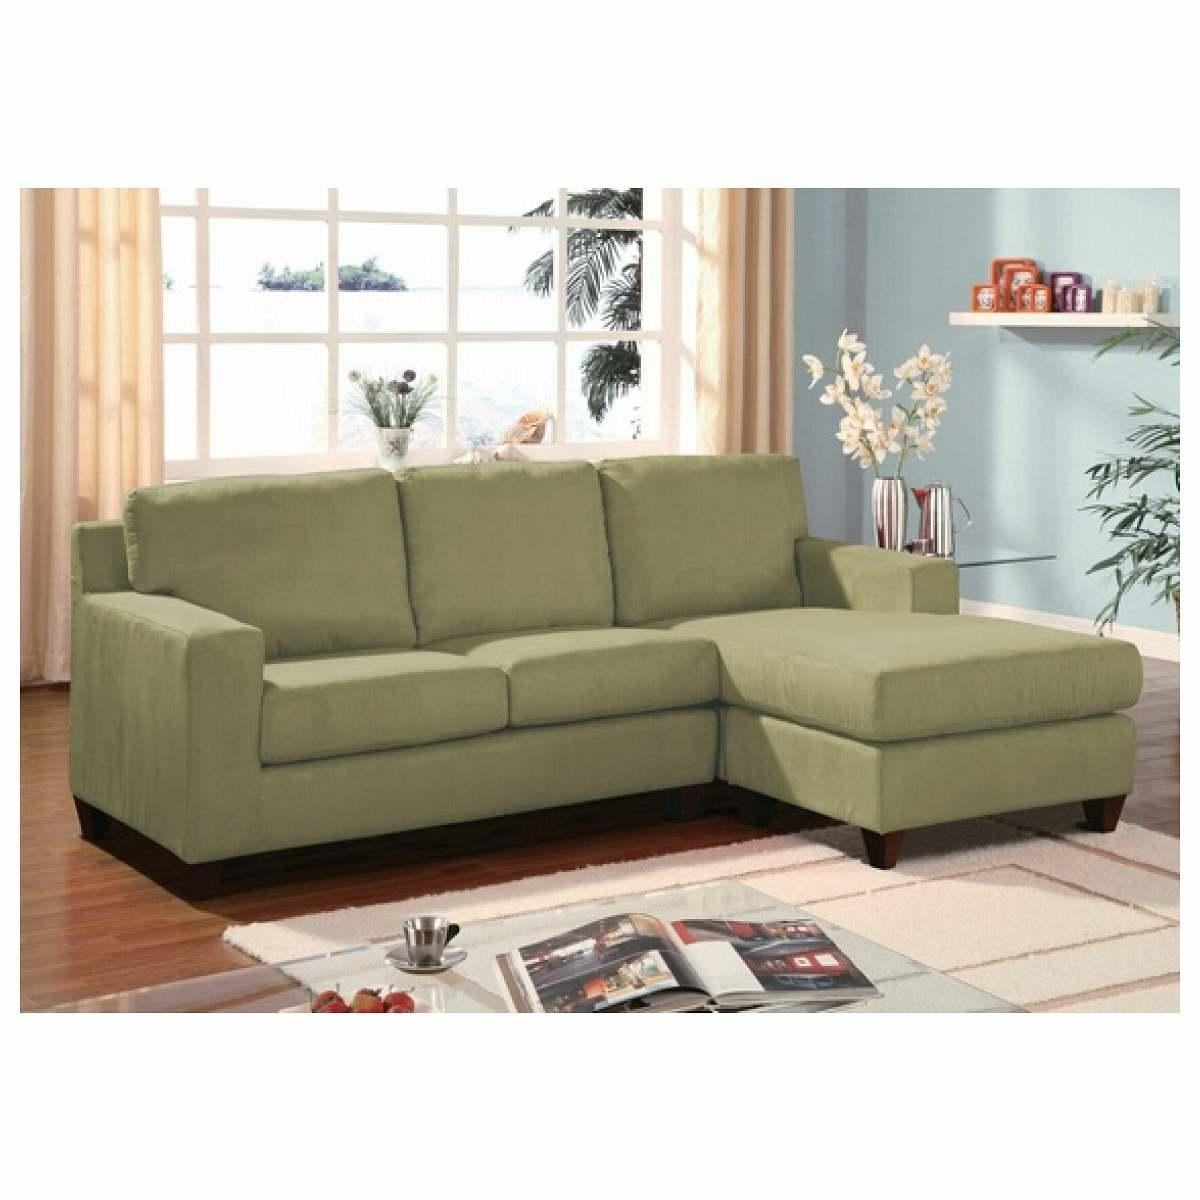 Furniture Home : Green Microfiber Reversible Sectional Sofa With In Apartment Sectional Sofa With Chaise (Image 11 of 15)